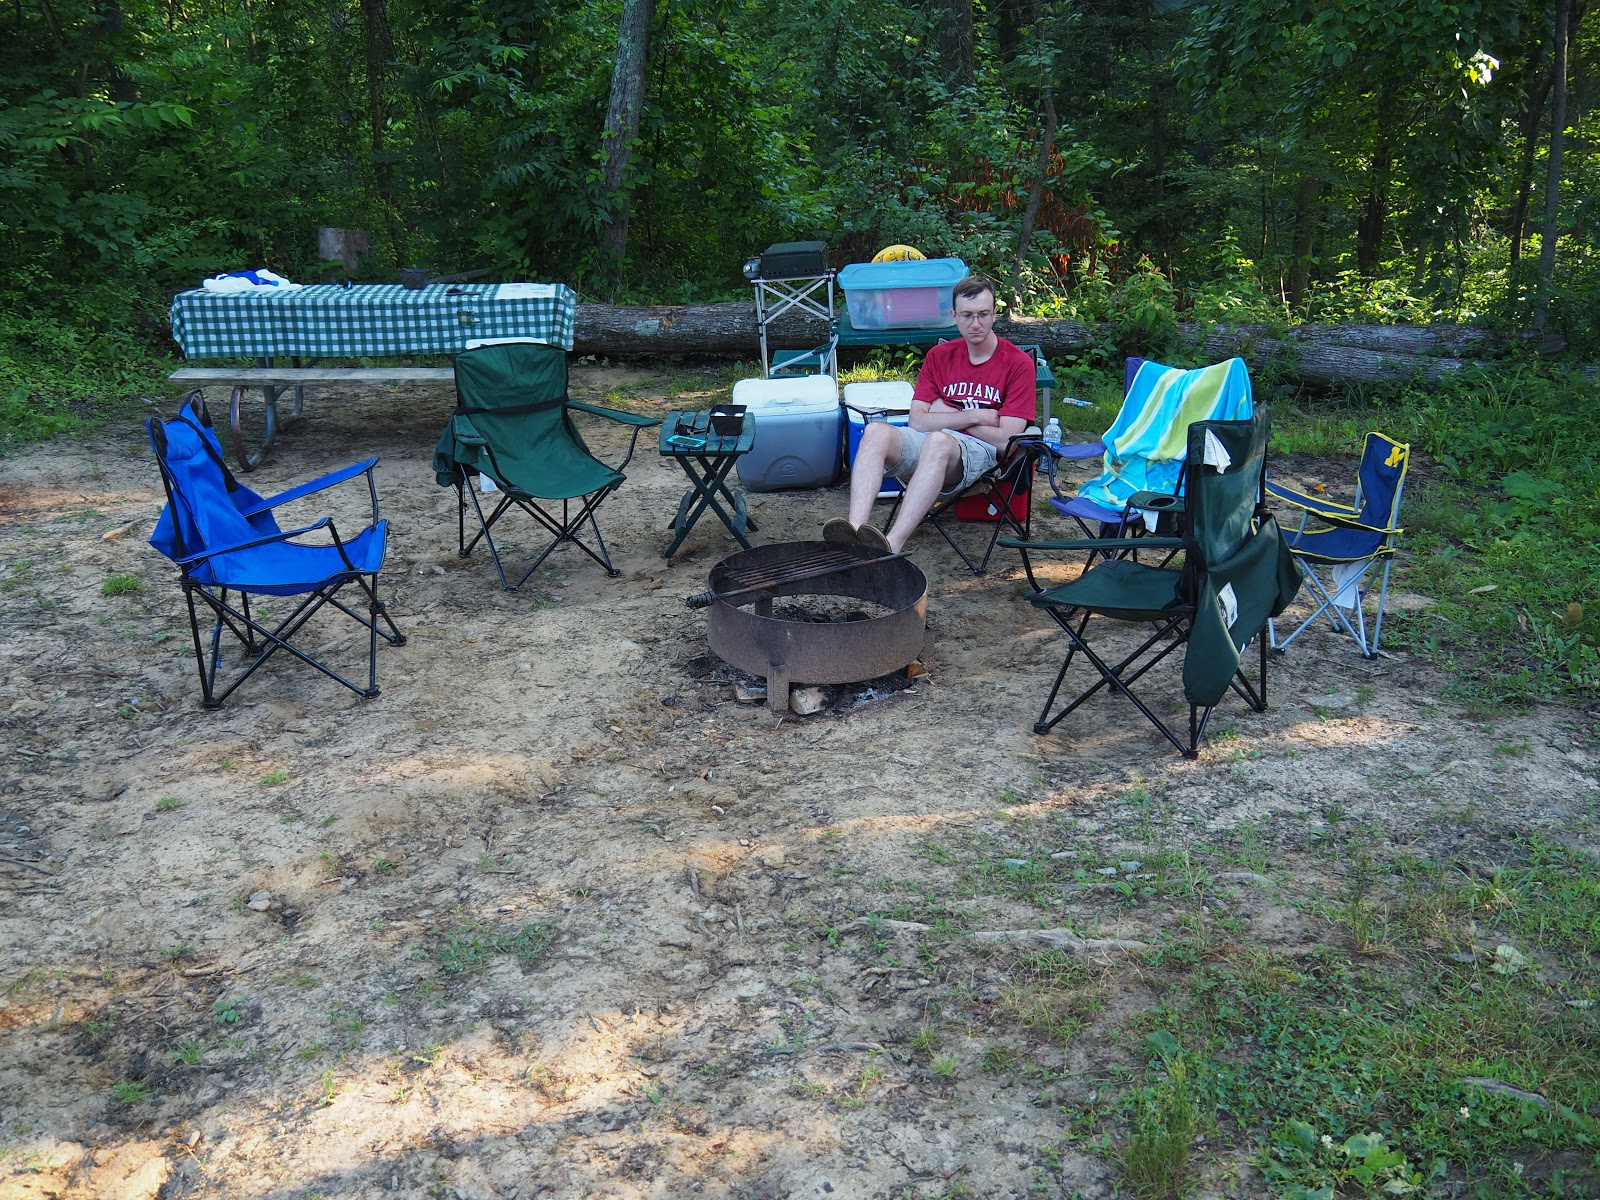 The Picnic Table Was Also Slanted But We Were Able To Find A Spot For The  Stove To Cook Things Evenly.